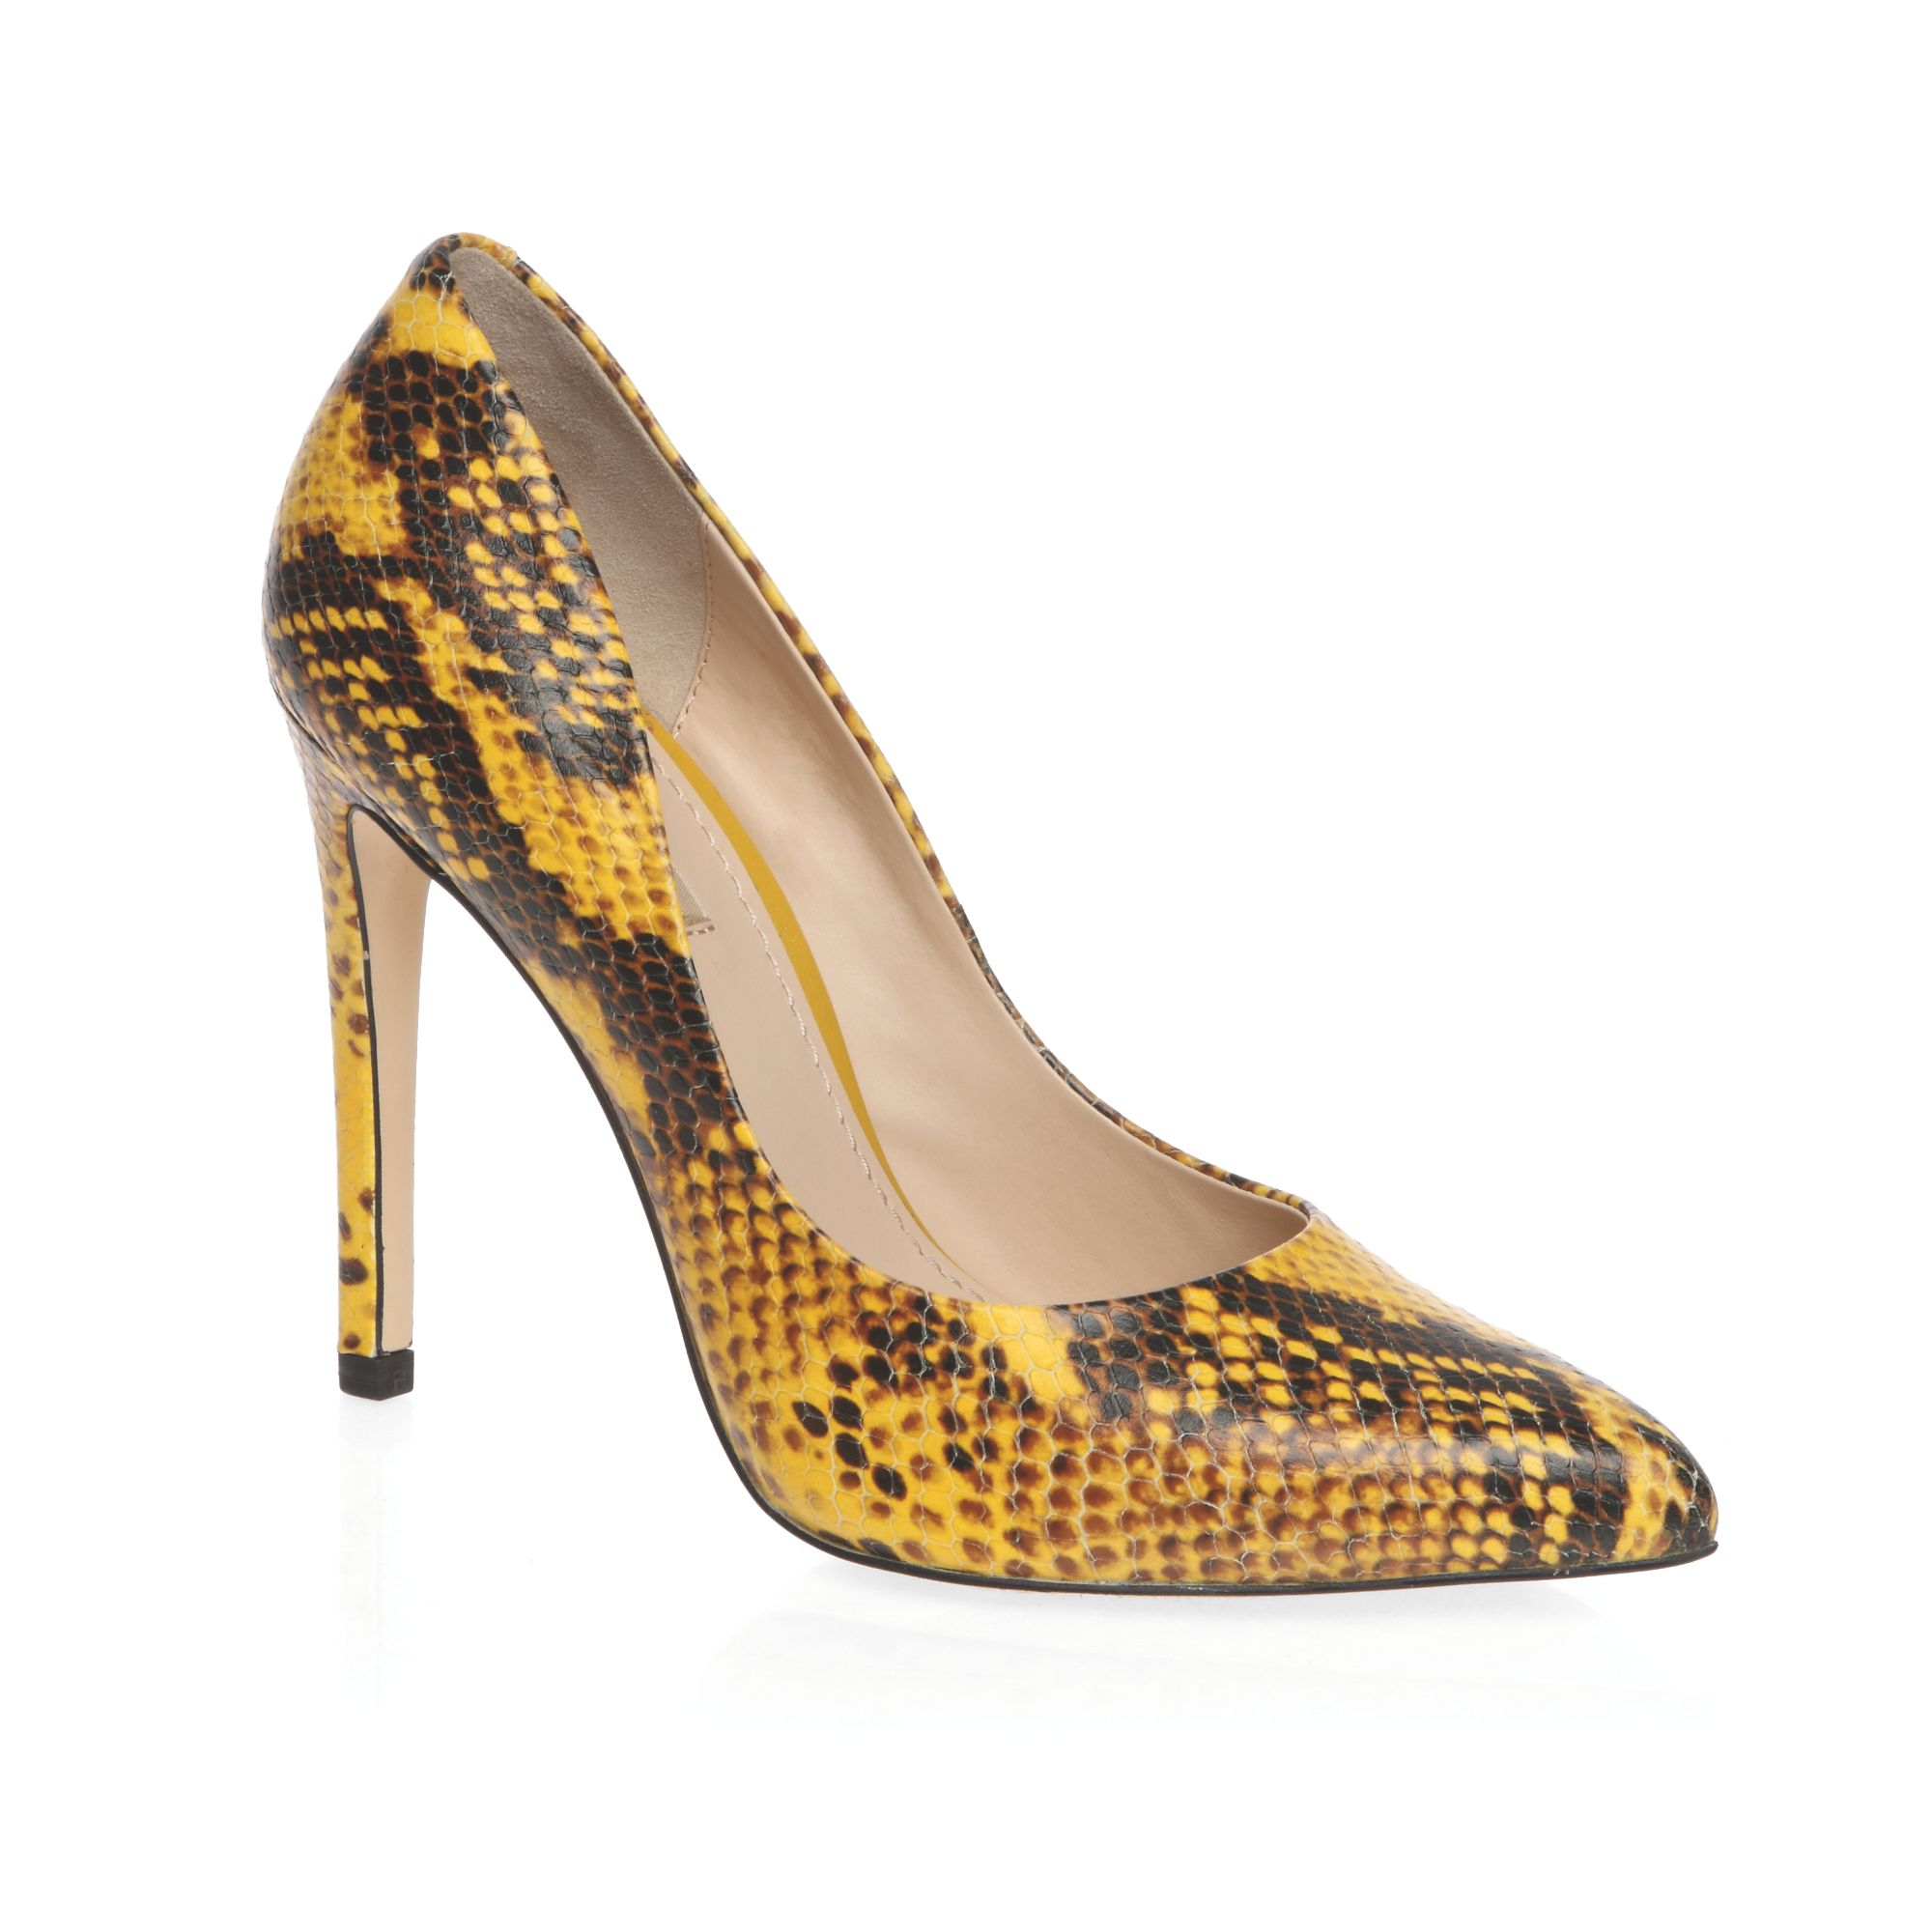 High heeled snake print court shoes